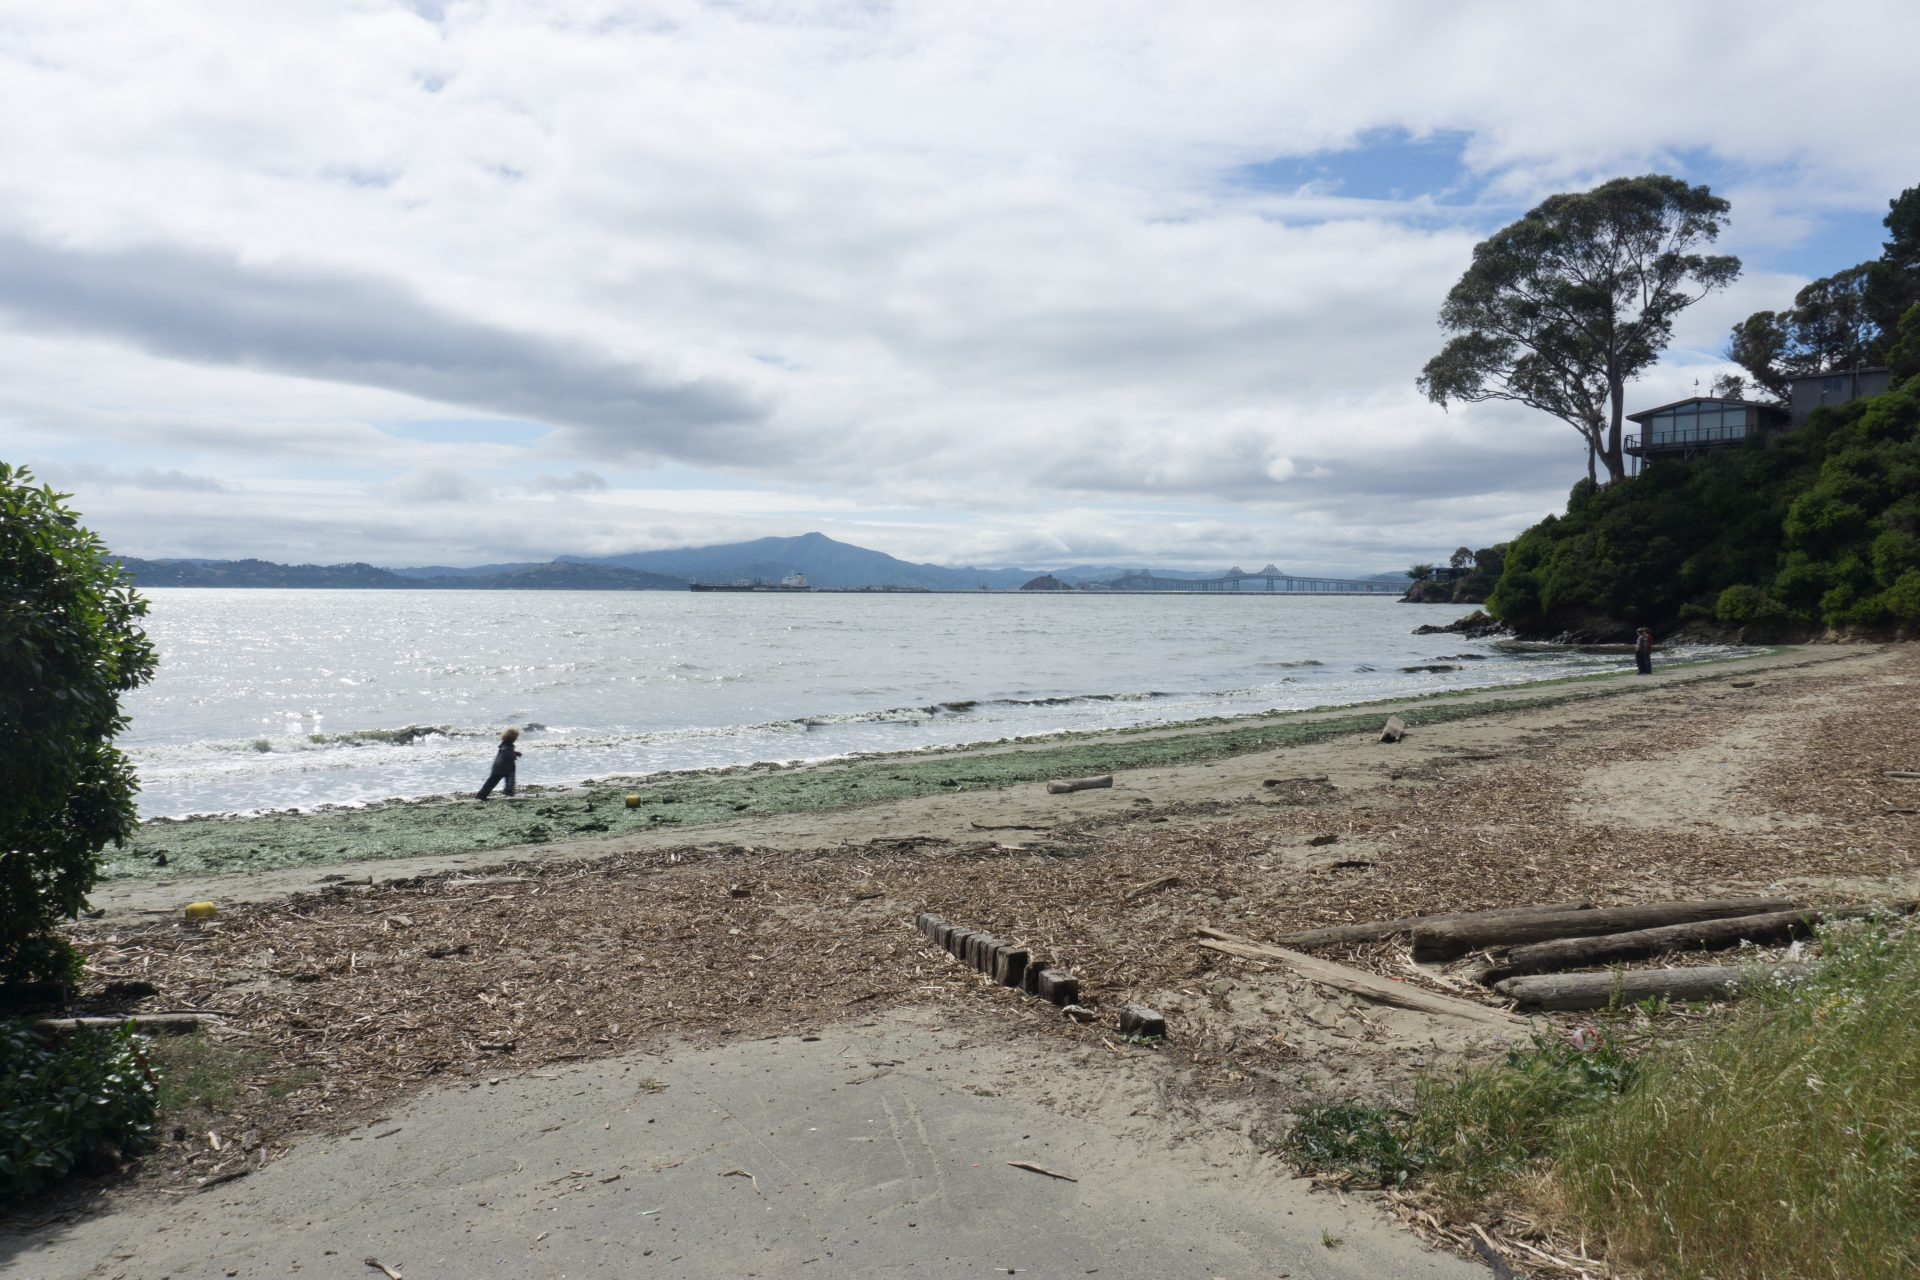 Looking from paved area across beach to bay